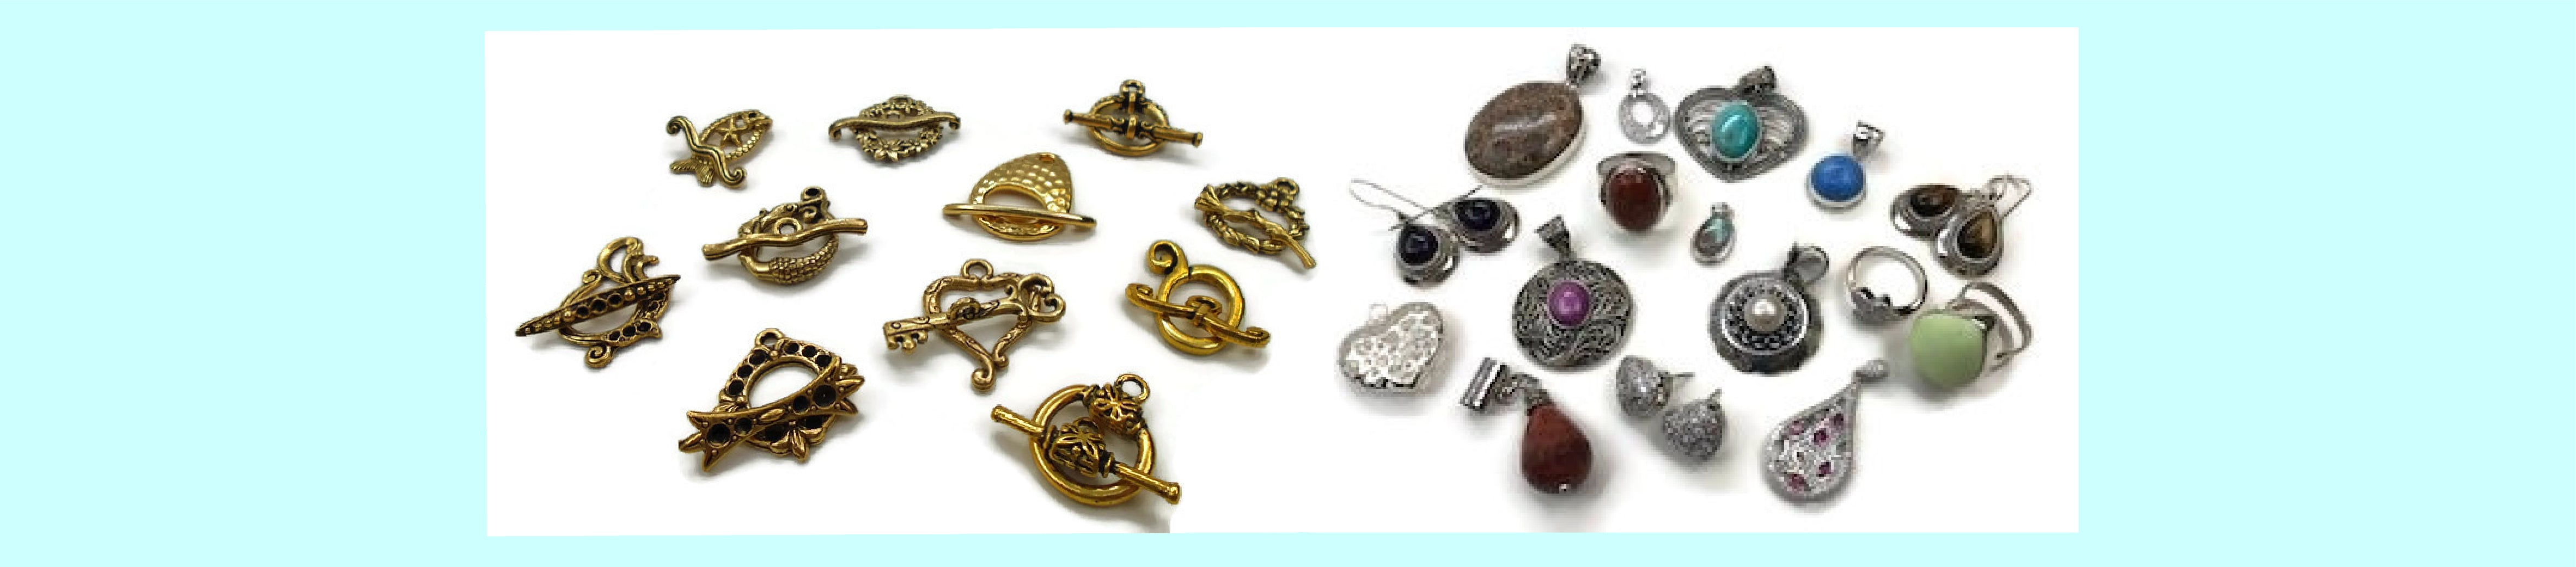 Tierra Cast Charms & Pendants